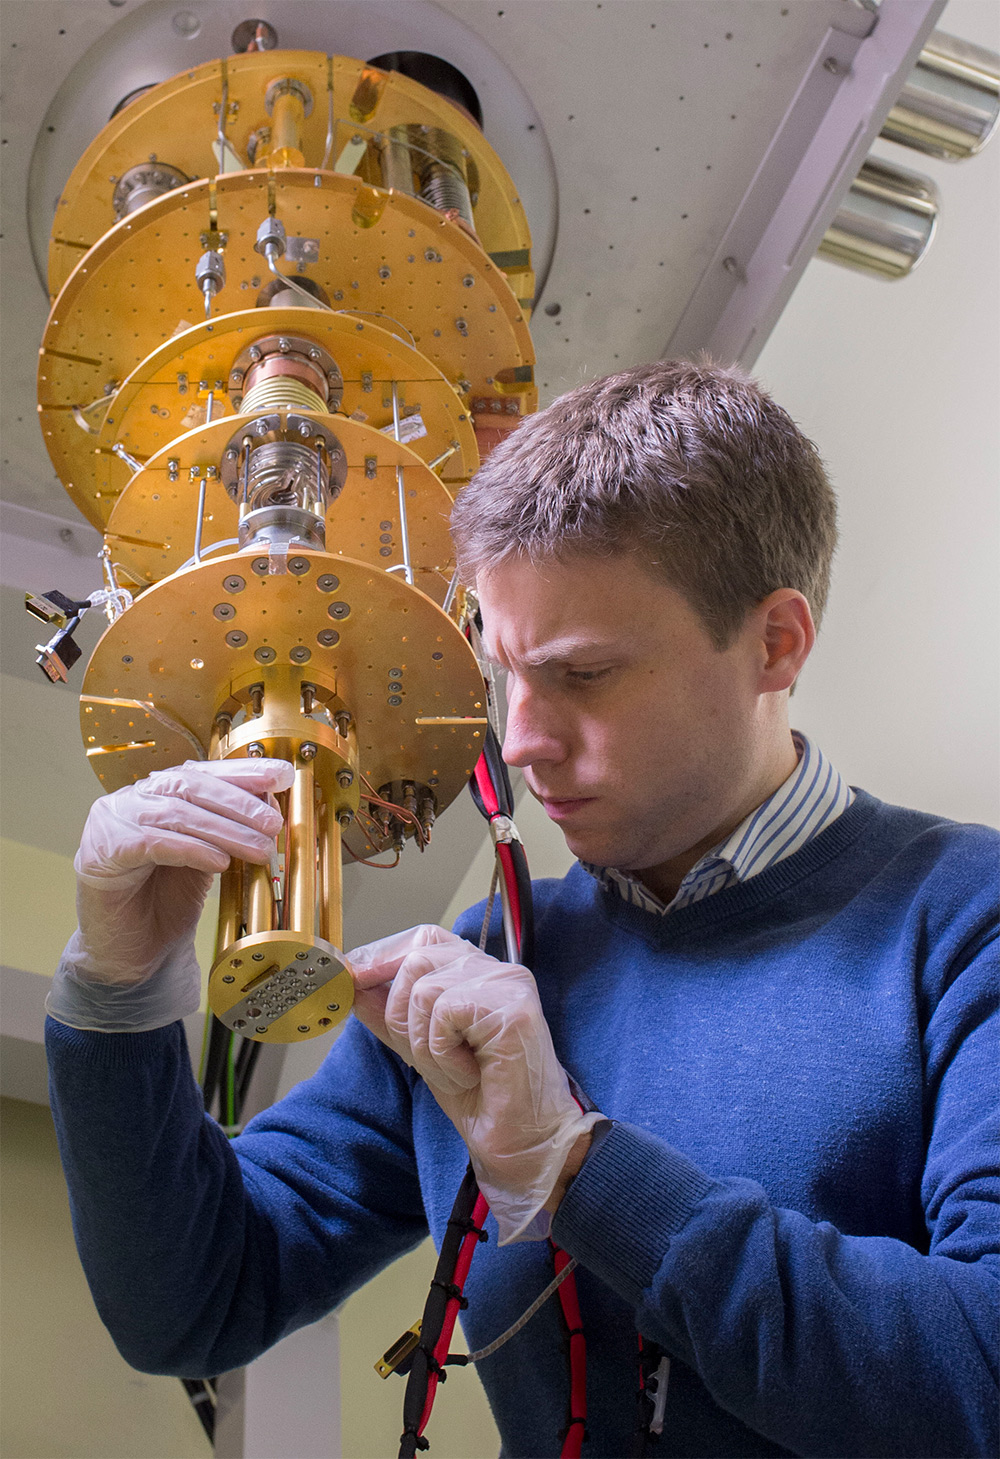 Keeping cool: Edward Laid adjusting the cryogenic core which chills nanotube devices to an operating temperature near absolute-zero, using a Triton from Oxford Instruments.